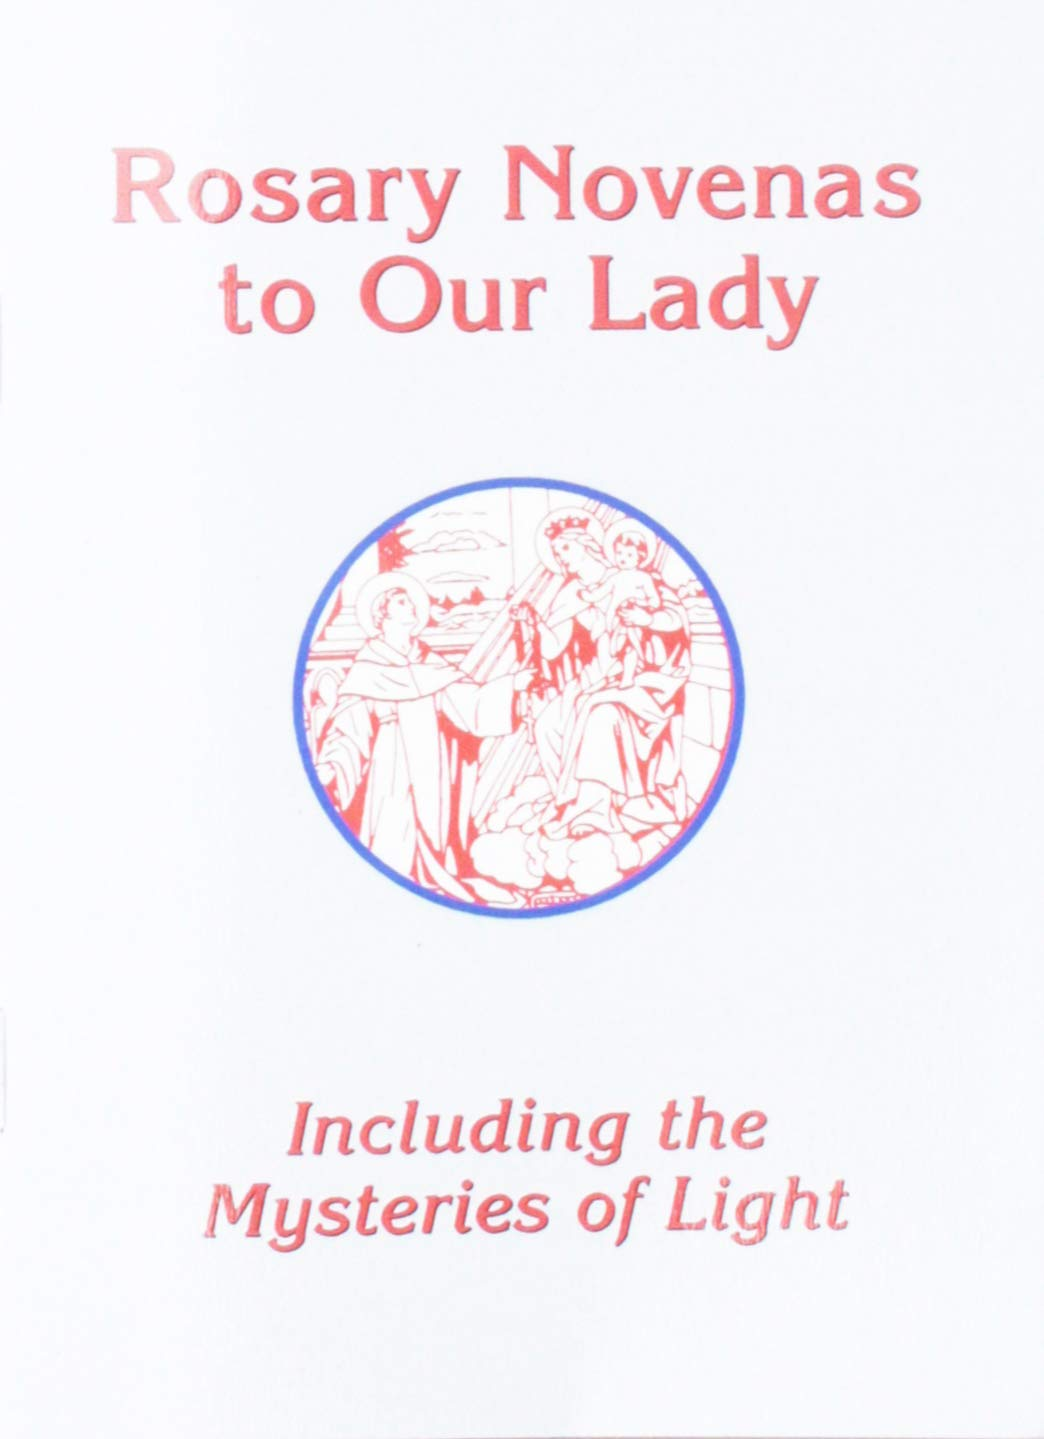 Rosary Novenas To Our Lady: Including the Mysteries of Light